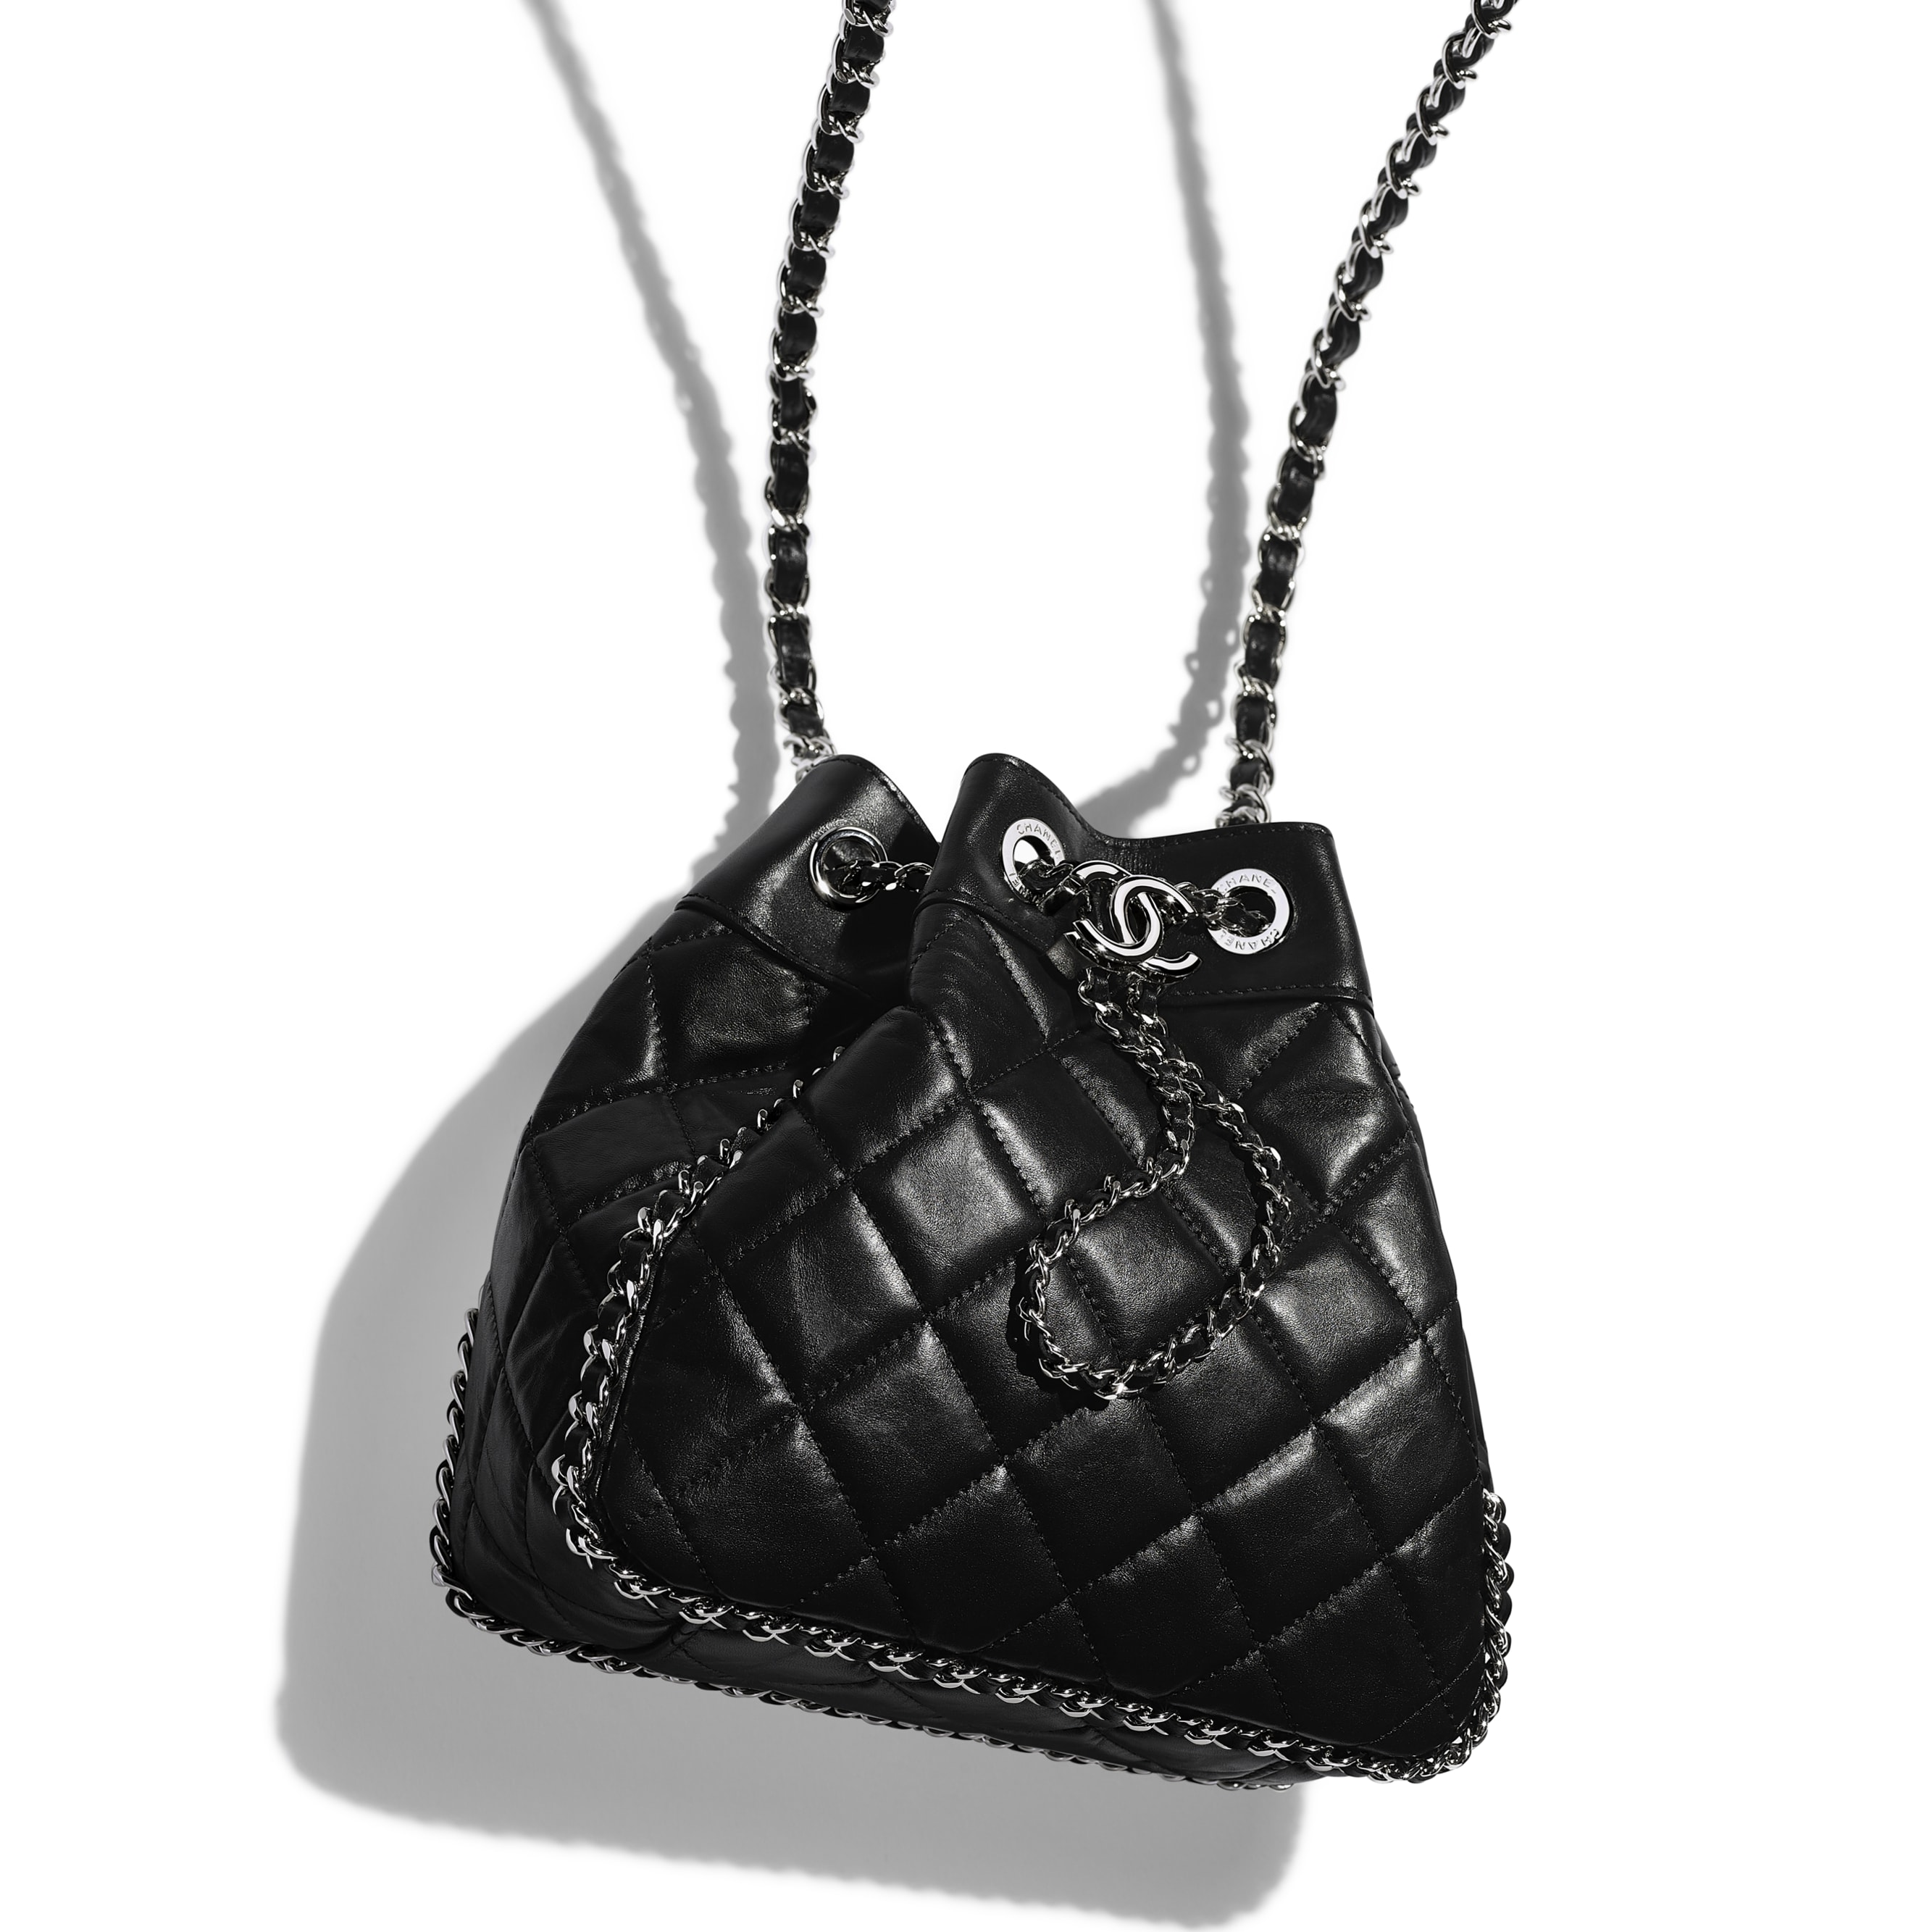 Drawstring Bag - Black - Aged Calfskin & Silver-Tone Metal - CHANEL - Extra view - see standard sized version